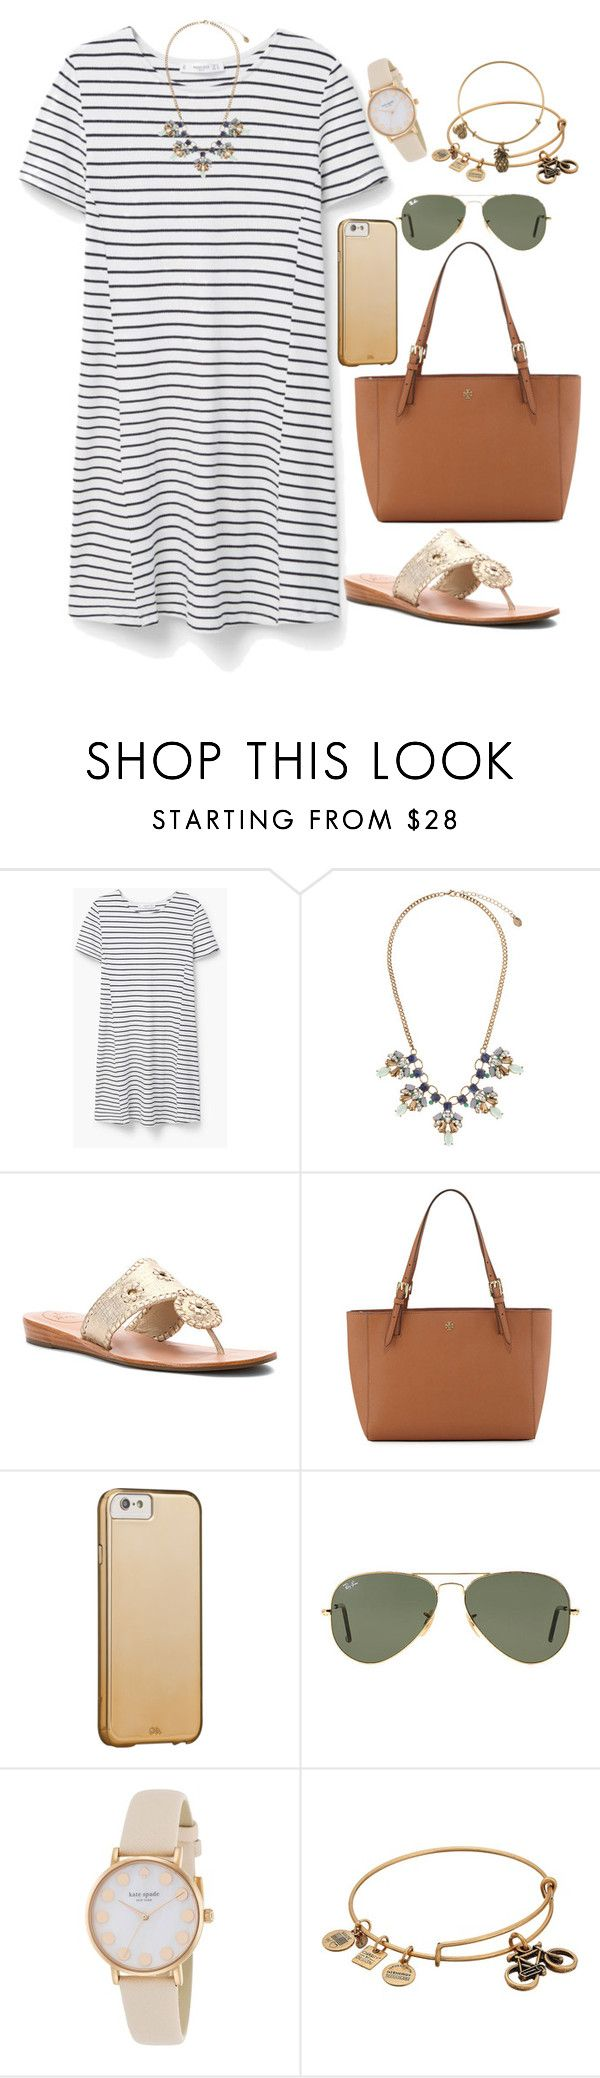 """""""a friend loves at all times. Proverbs 17:17"""" by isabella813 ❤ liked on Polyvore featuring MANGO, Accessorize, Jack Rogers, Tory Burch, Ray-Ban, Kate Spade and Alex and Ani"""